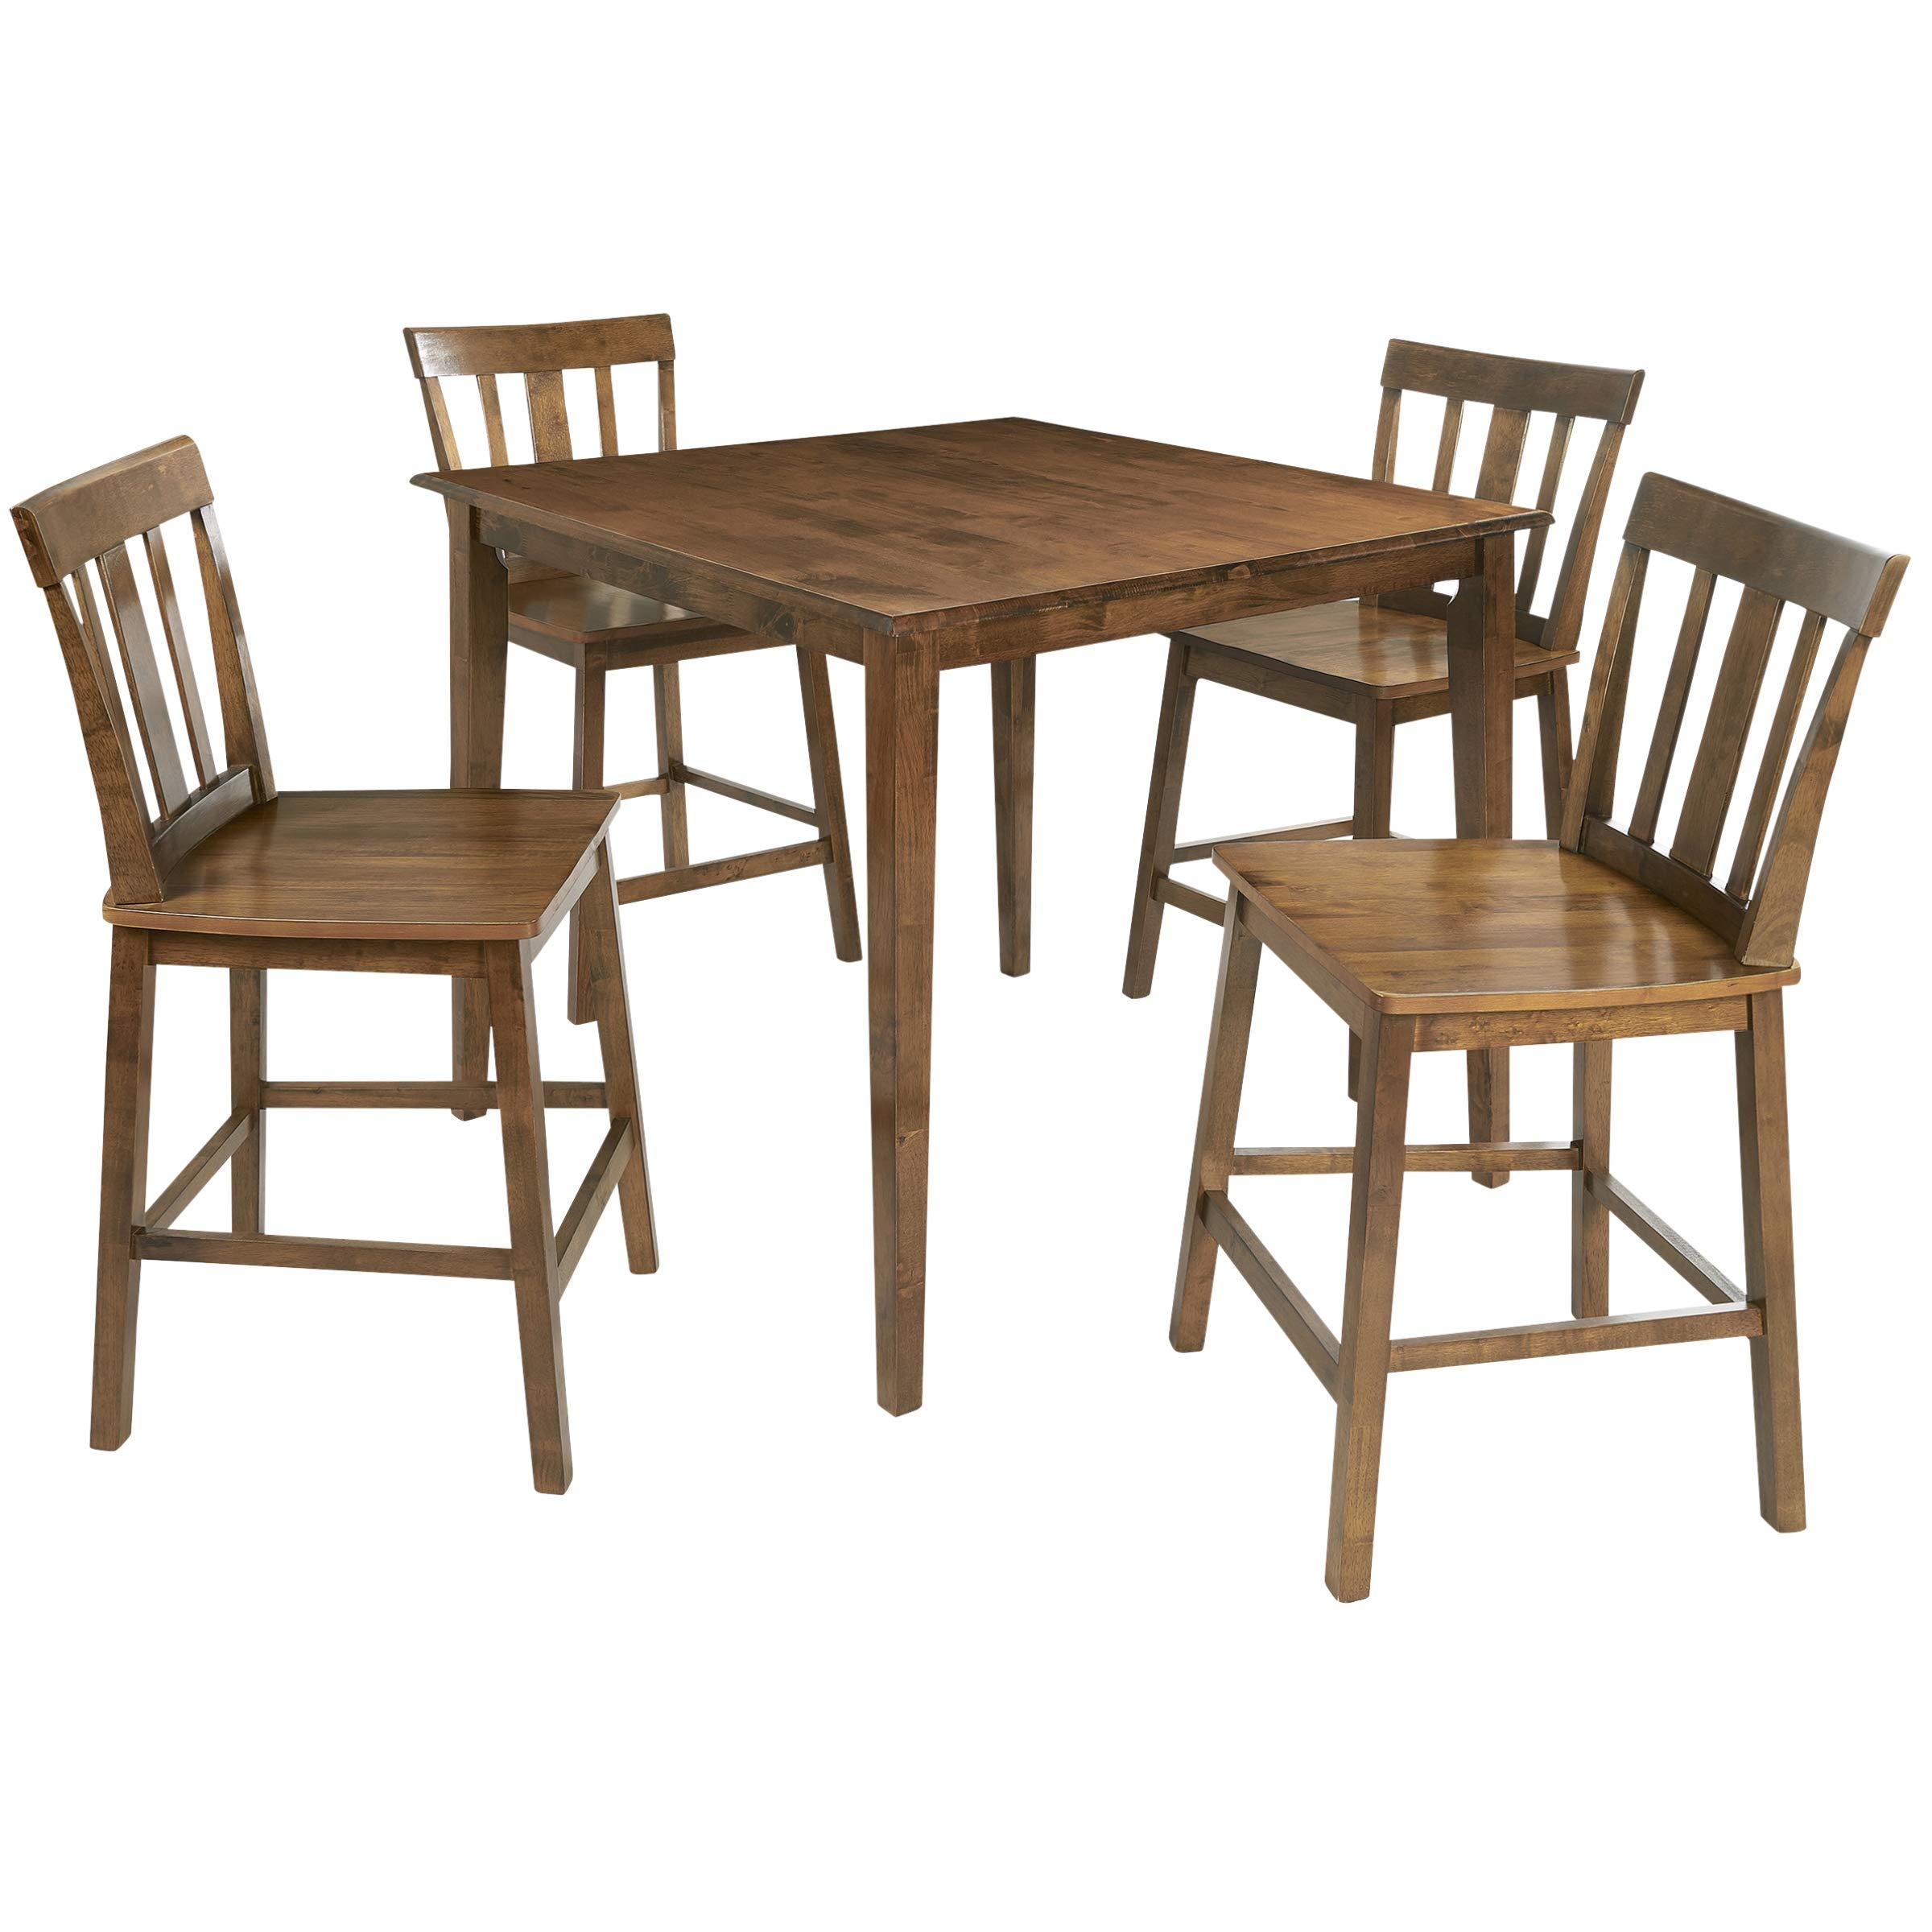 Best Rated In Kitchen & Dining Room Sets & Helpful